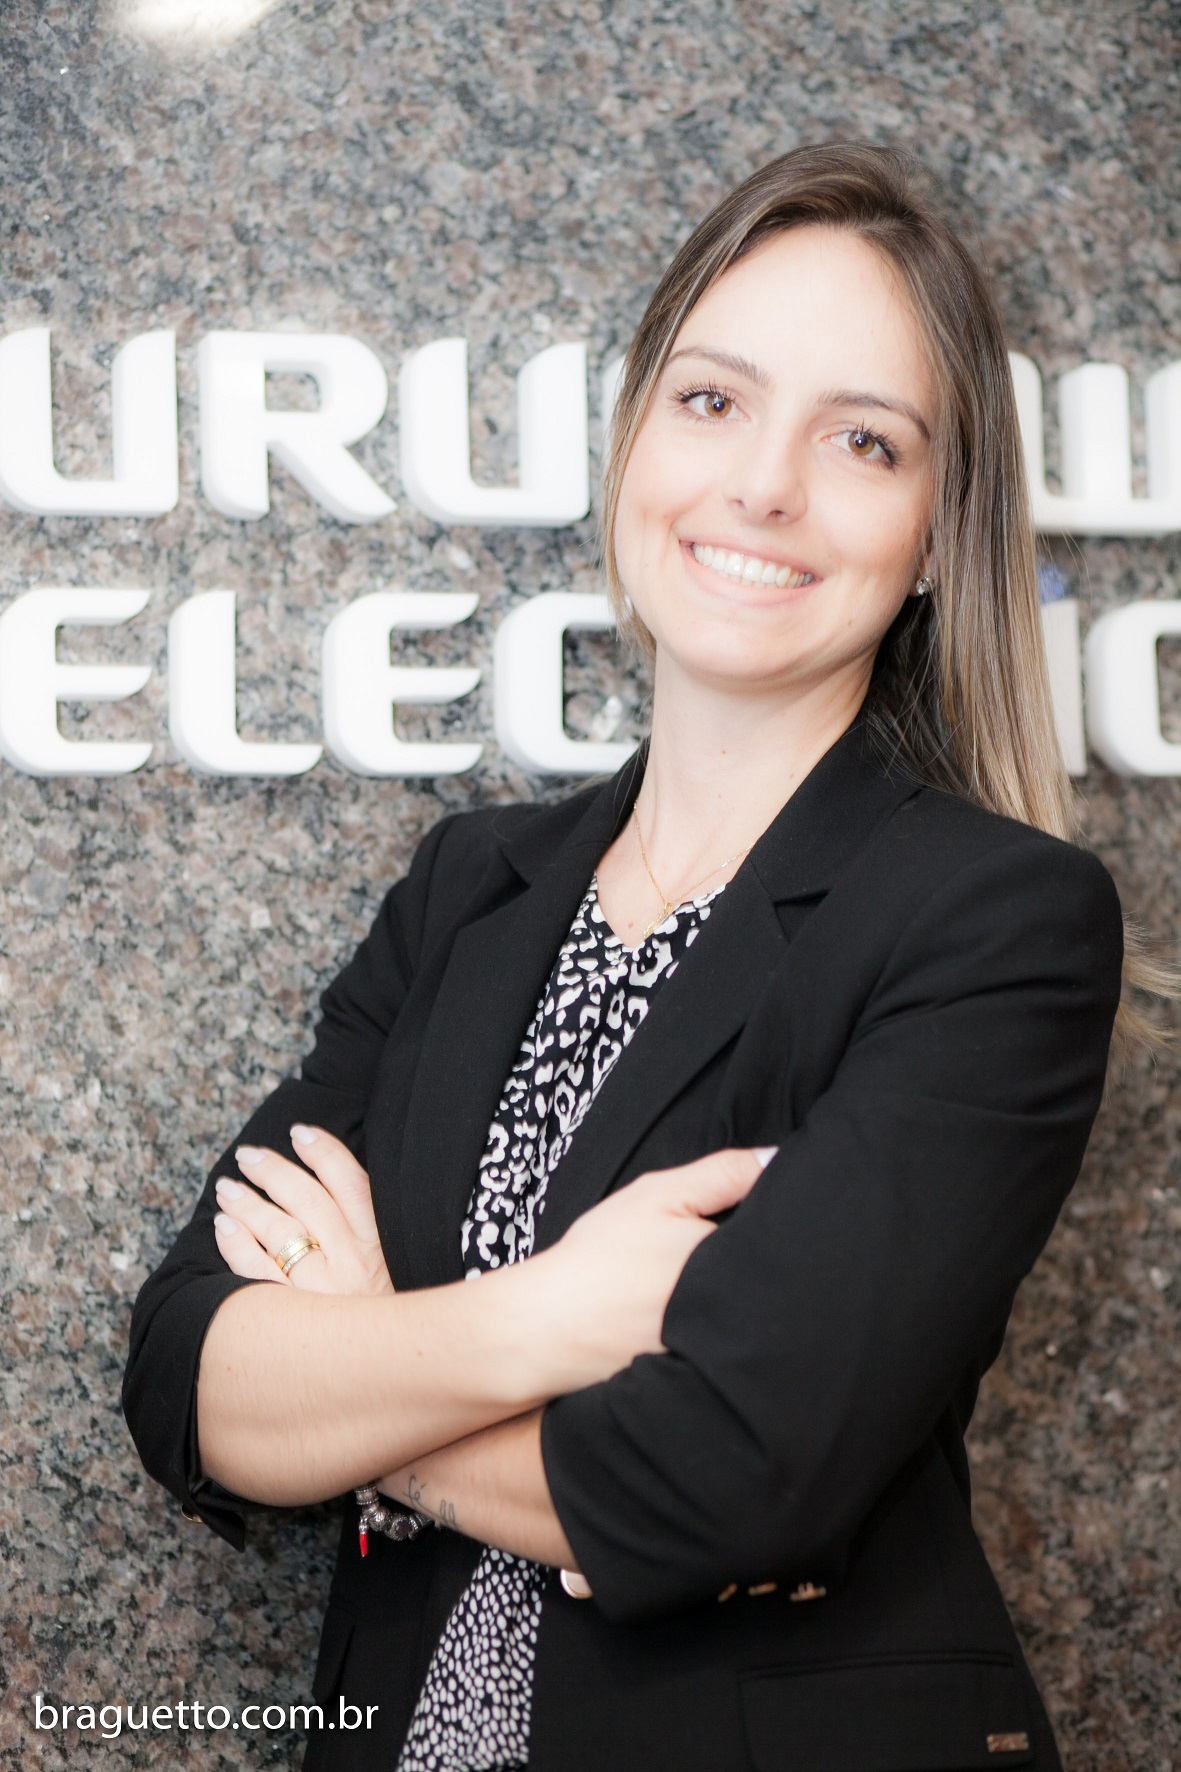 Furukawa restructures to seize IoT, mining opportunities in LatAm